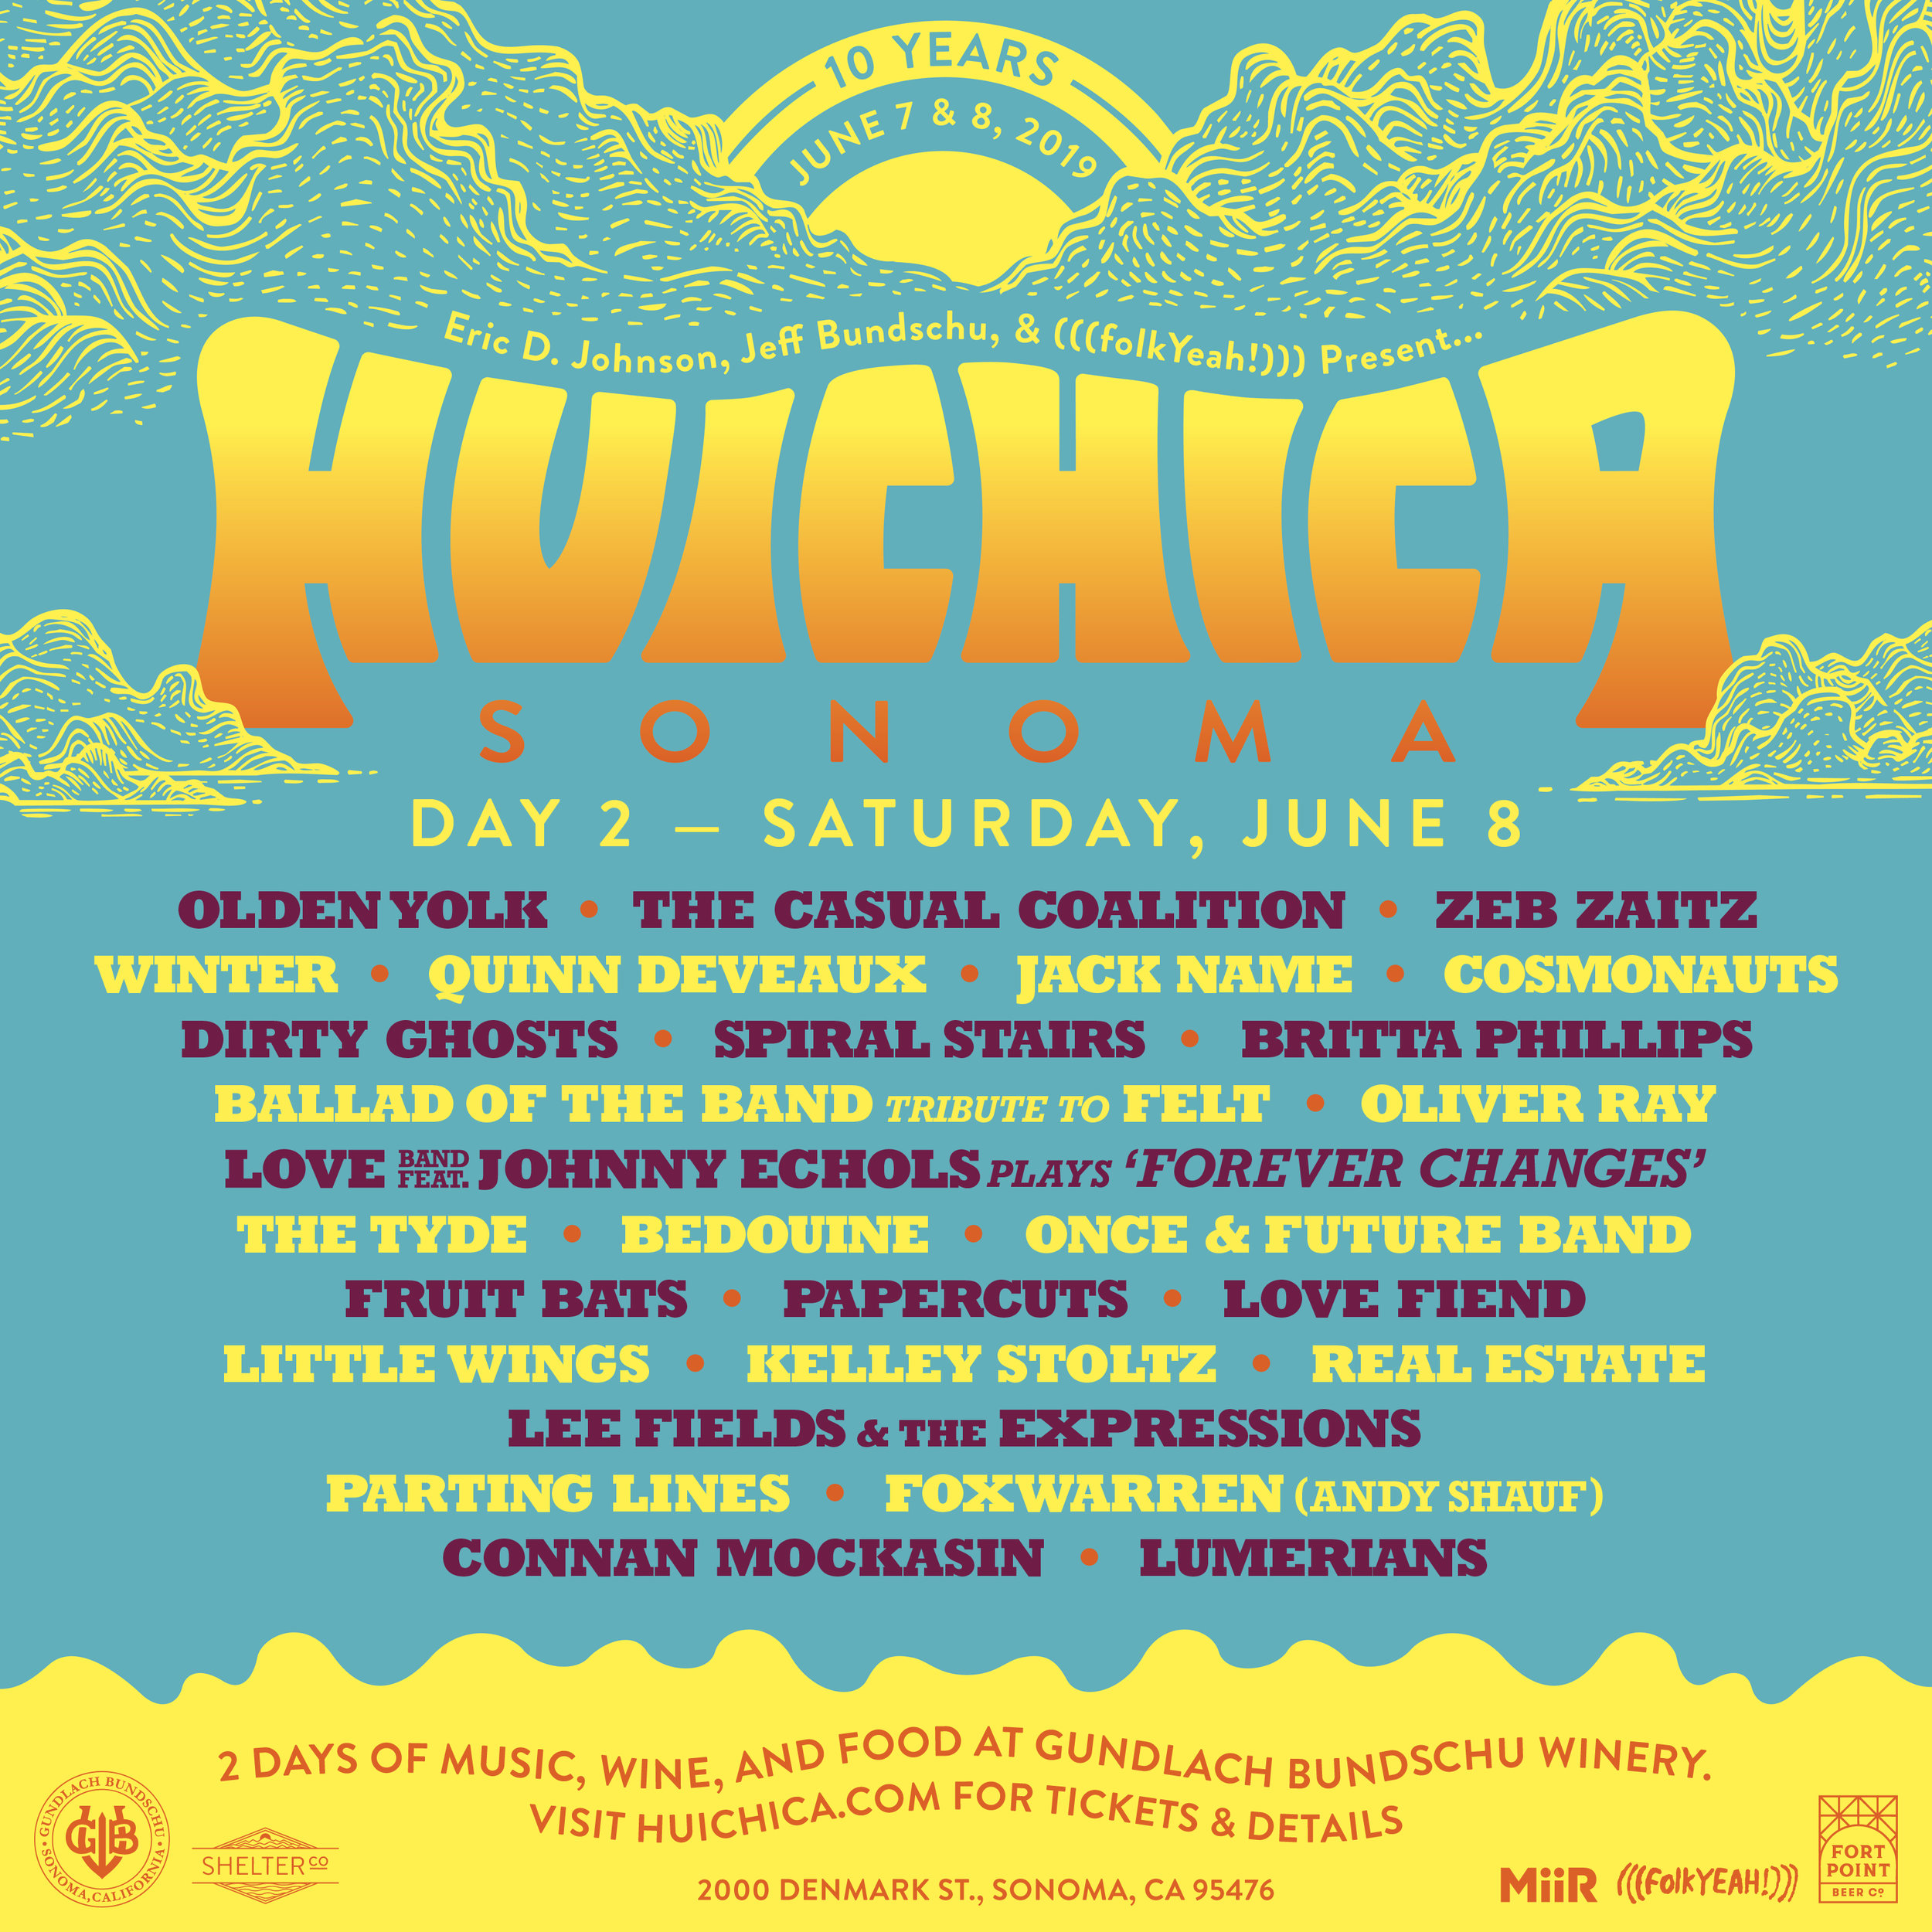 On Saturday Huichica takes over all of Gundlach Bundschu Winery and hosts music across four stages, the Hillside Amphitheater, the Cave Stage, the Giraffe Stage and the Historic Redwood Barn.